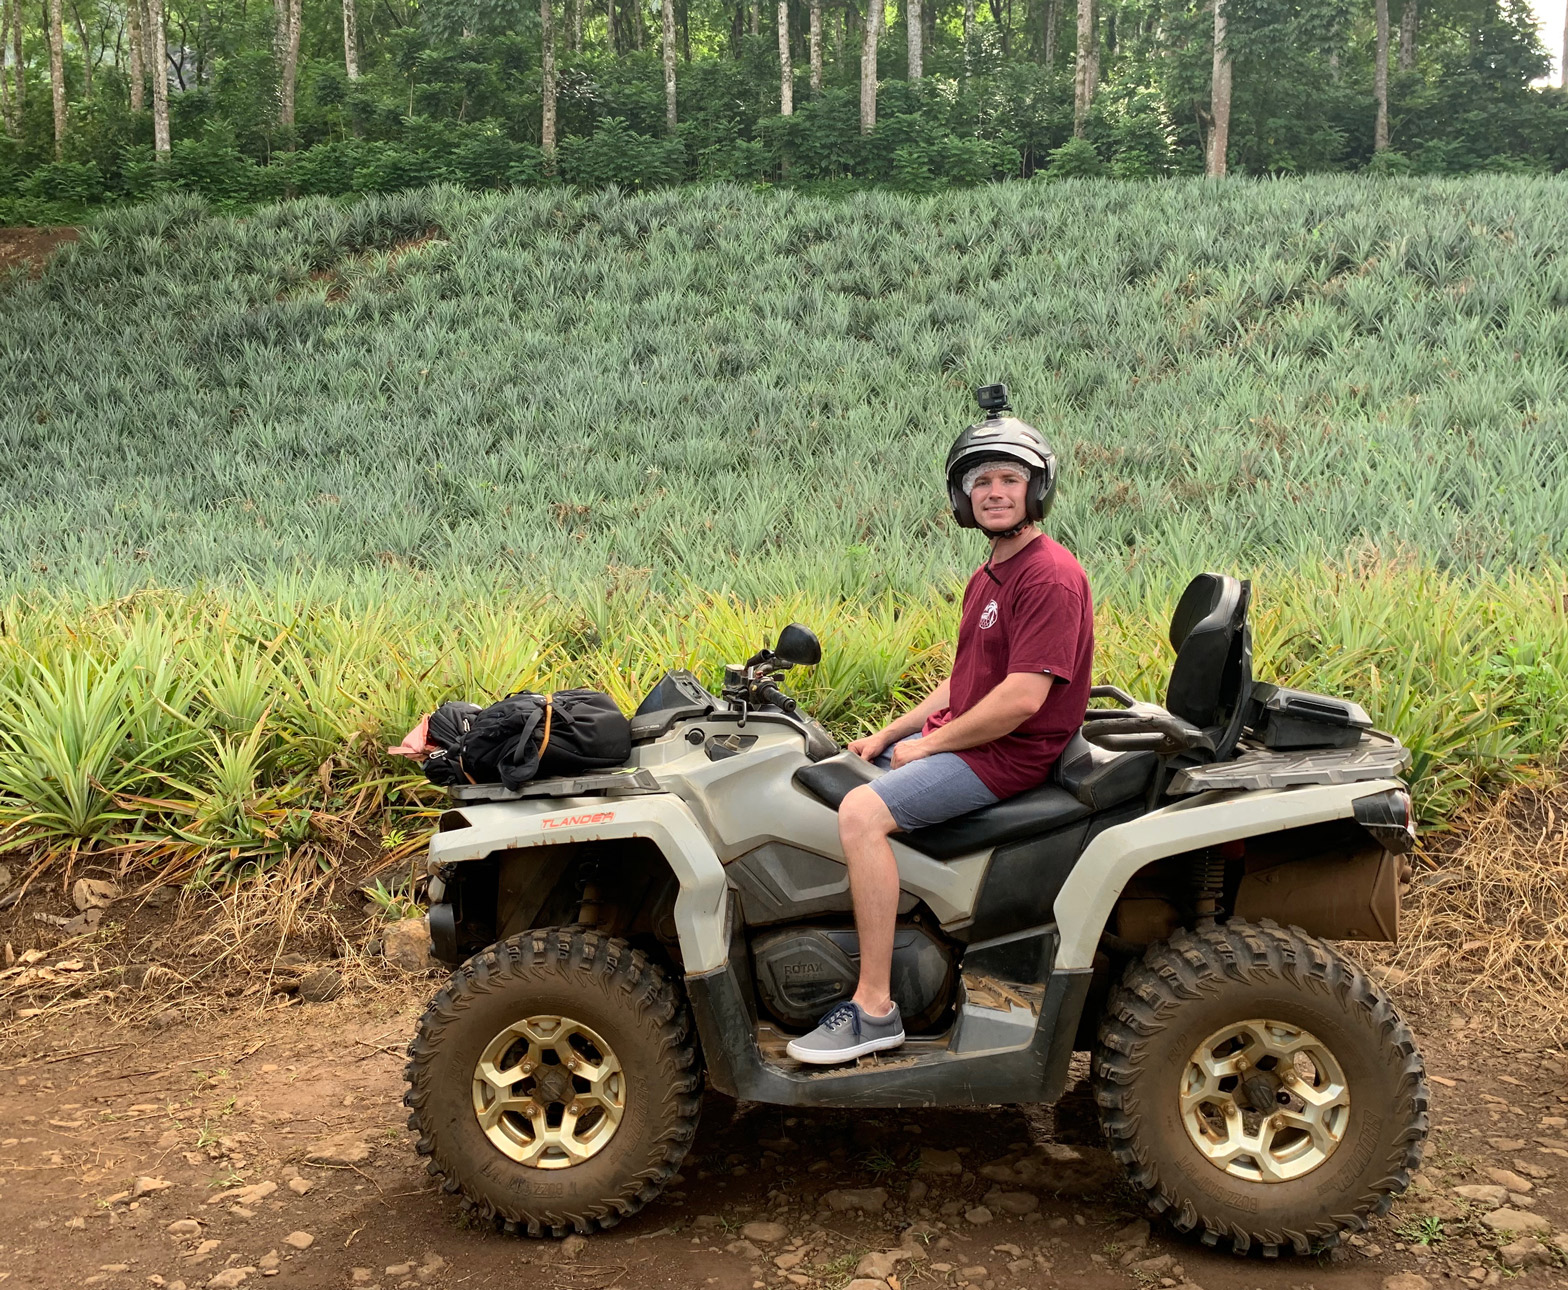 ATV Tour with Albert Tours in Moorea through the pineapple fields.